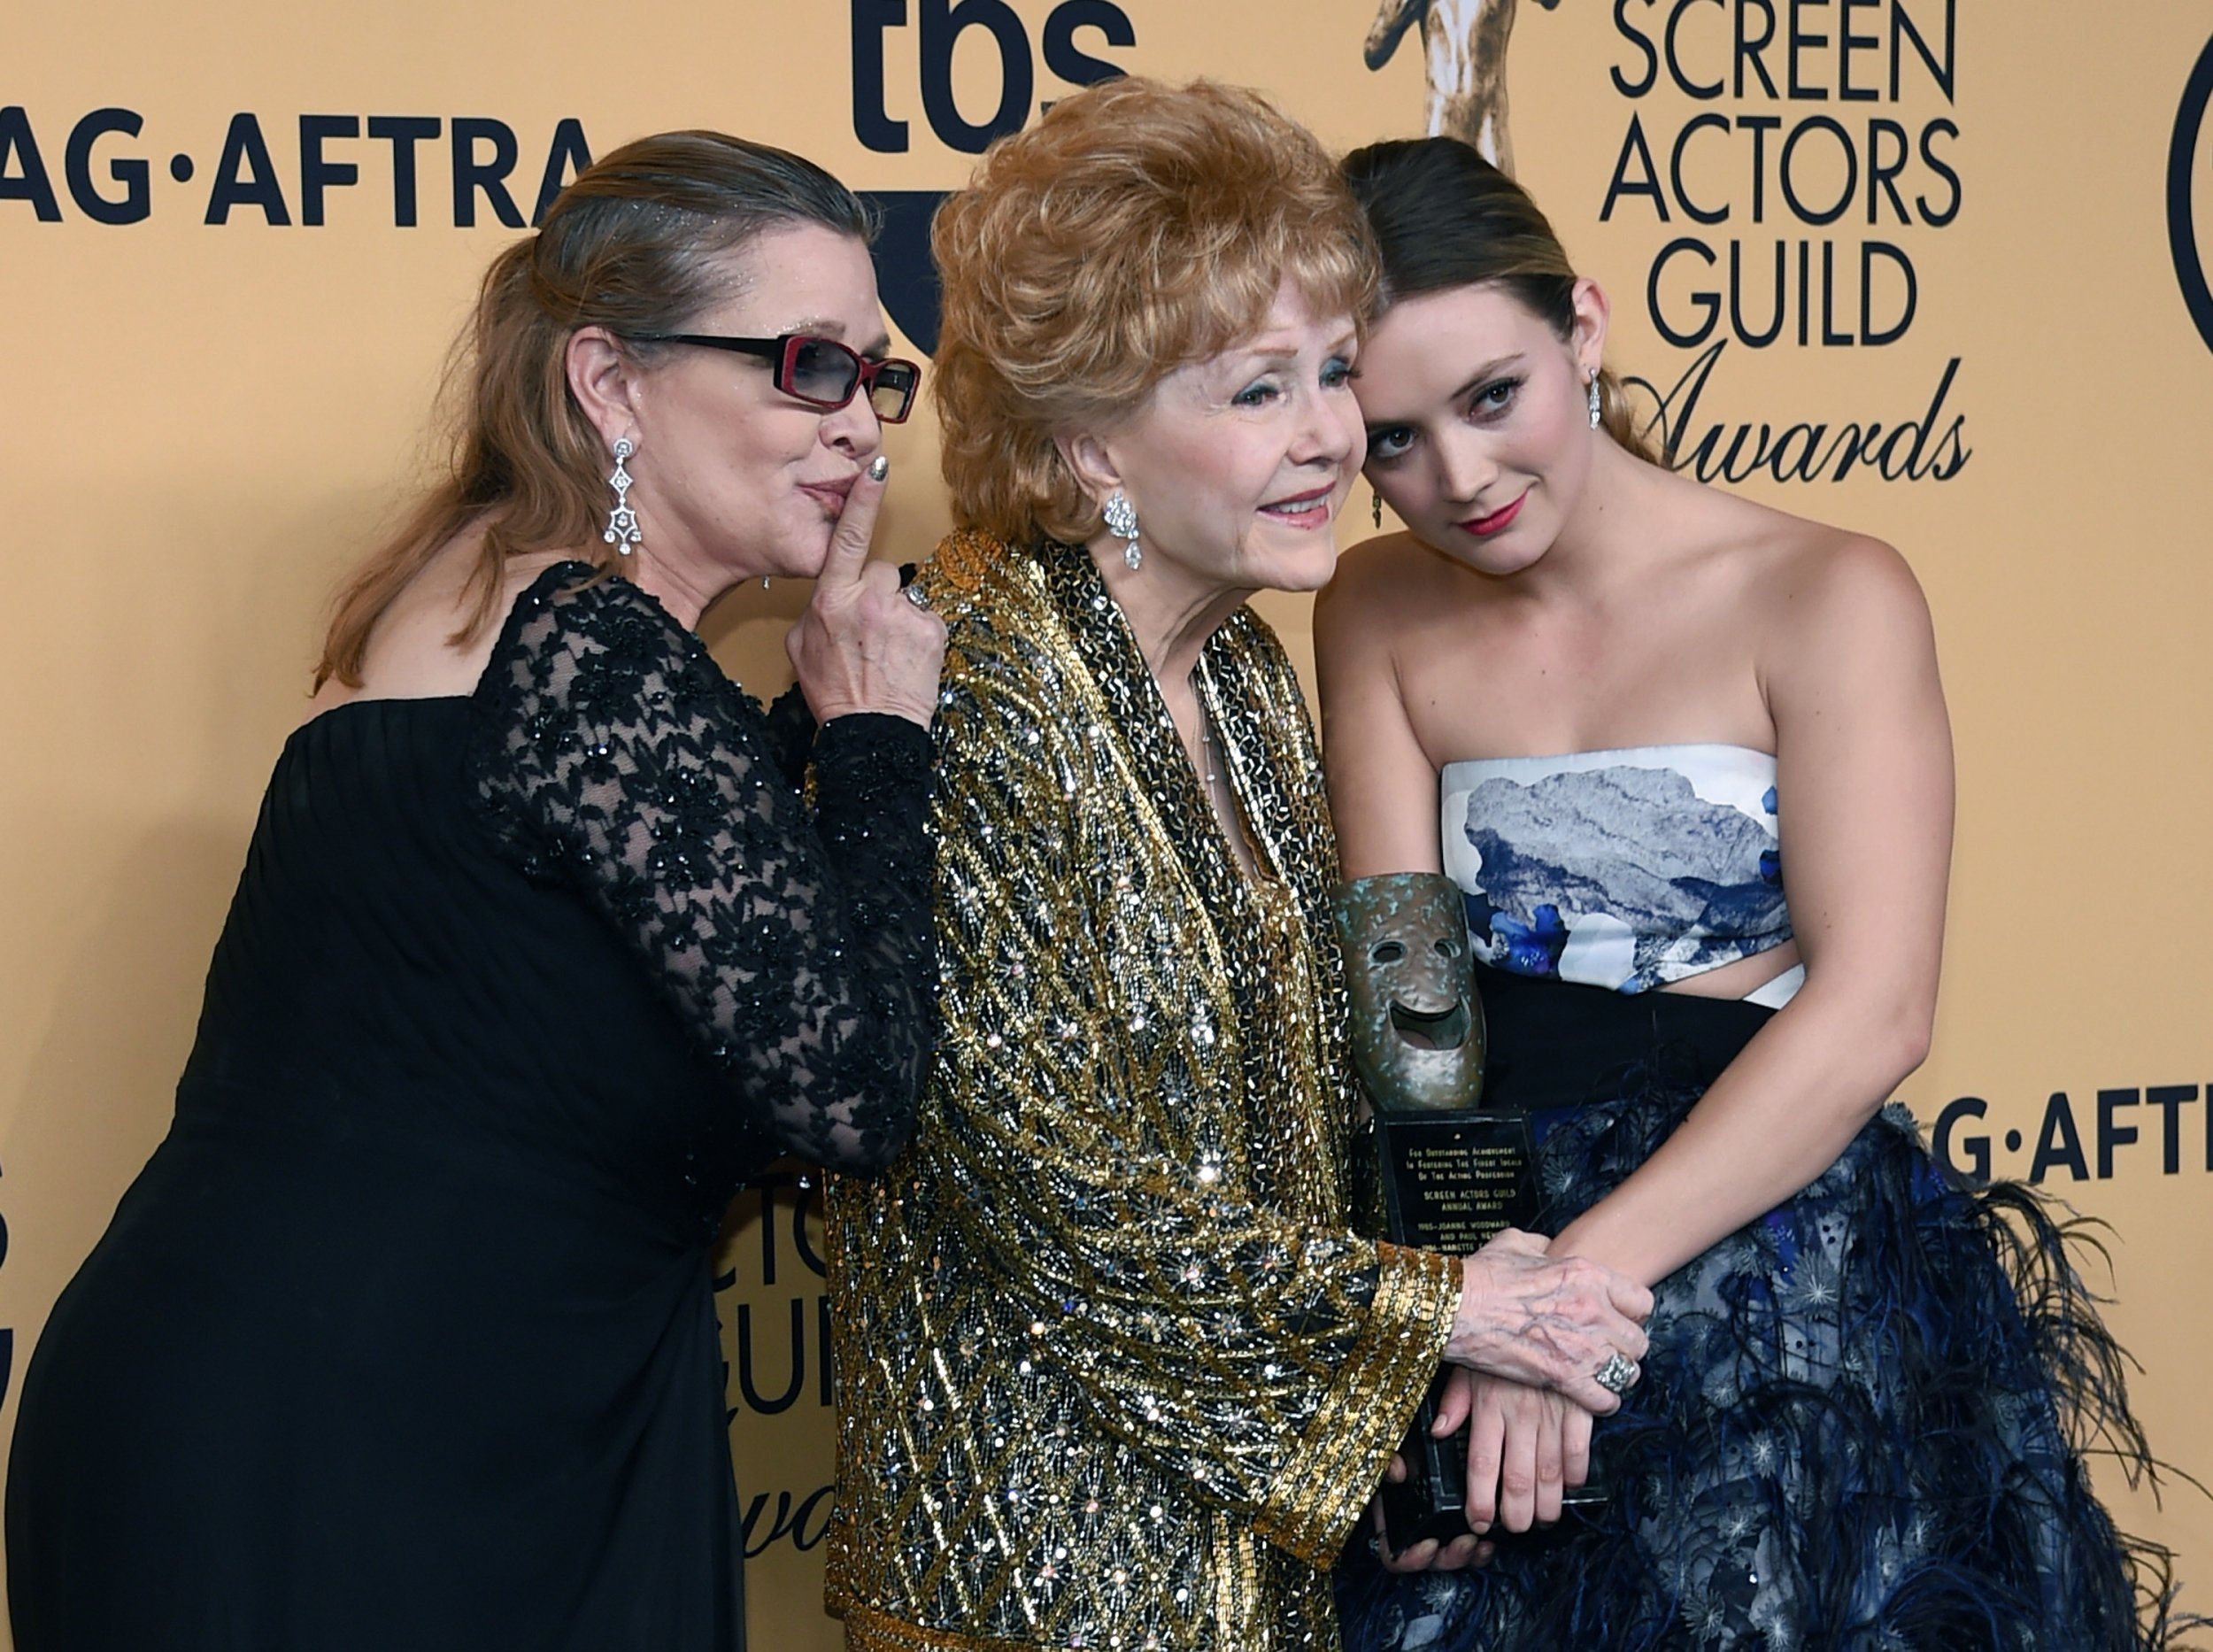 Carrie Fisher, Debbie Reynolds and Billie Lourd